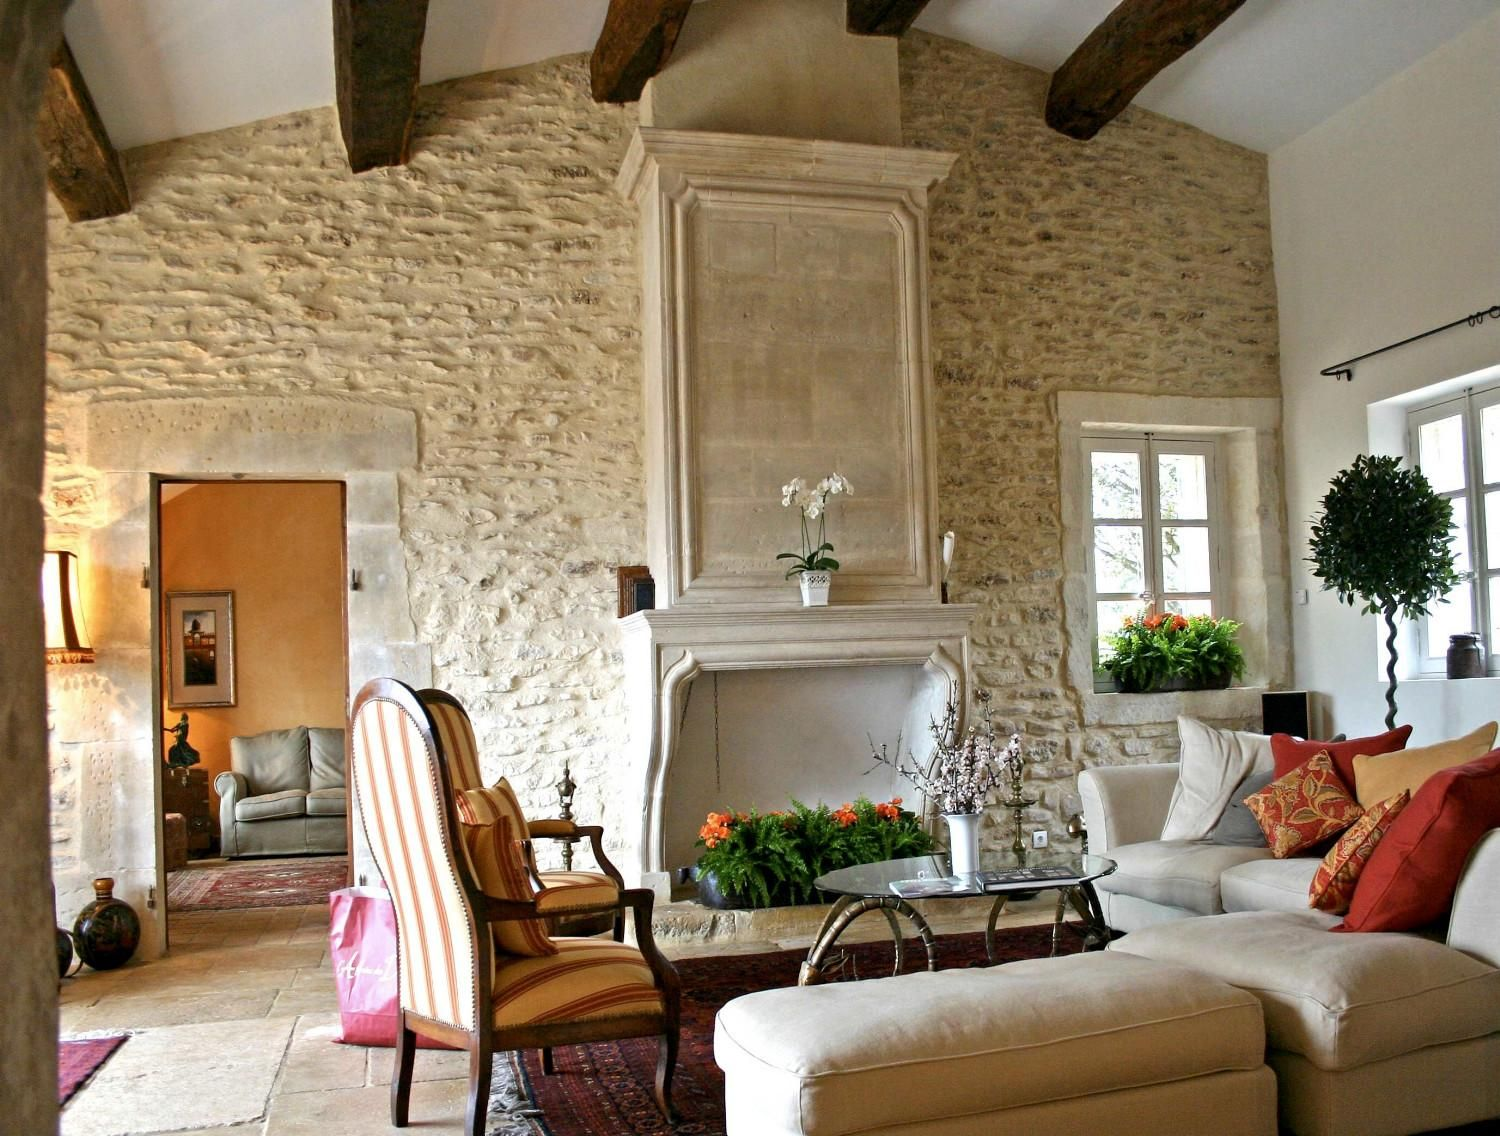 Newly built houses in the Luberon : A Provencal Mas made of stone ...